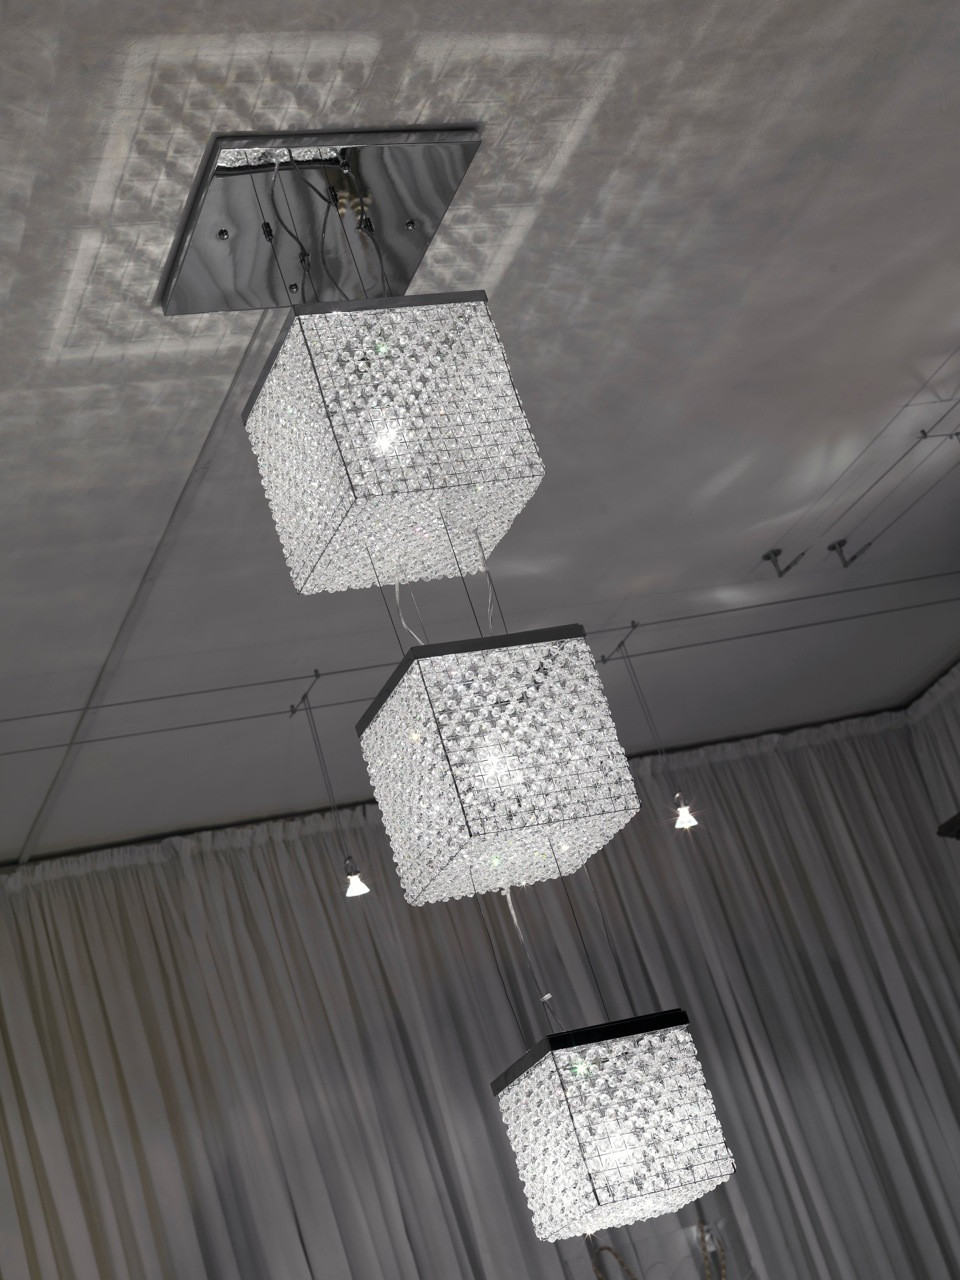 TRIPLE BEADED CUBE LIGHT SCULPTURE